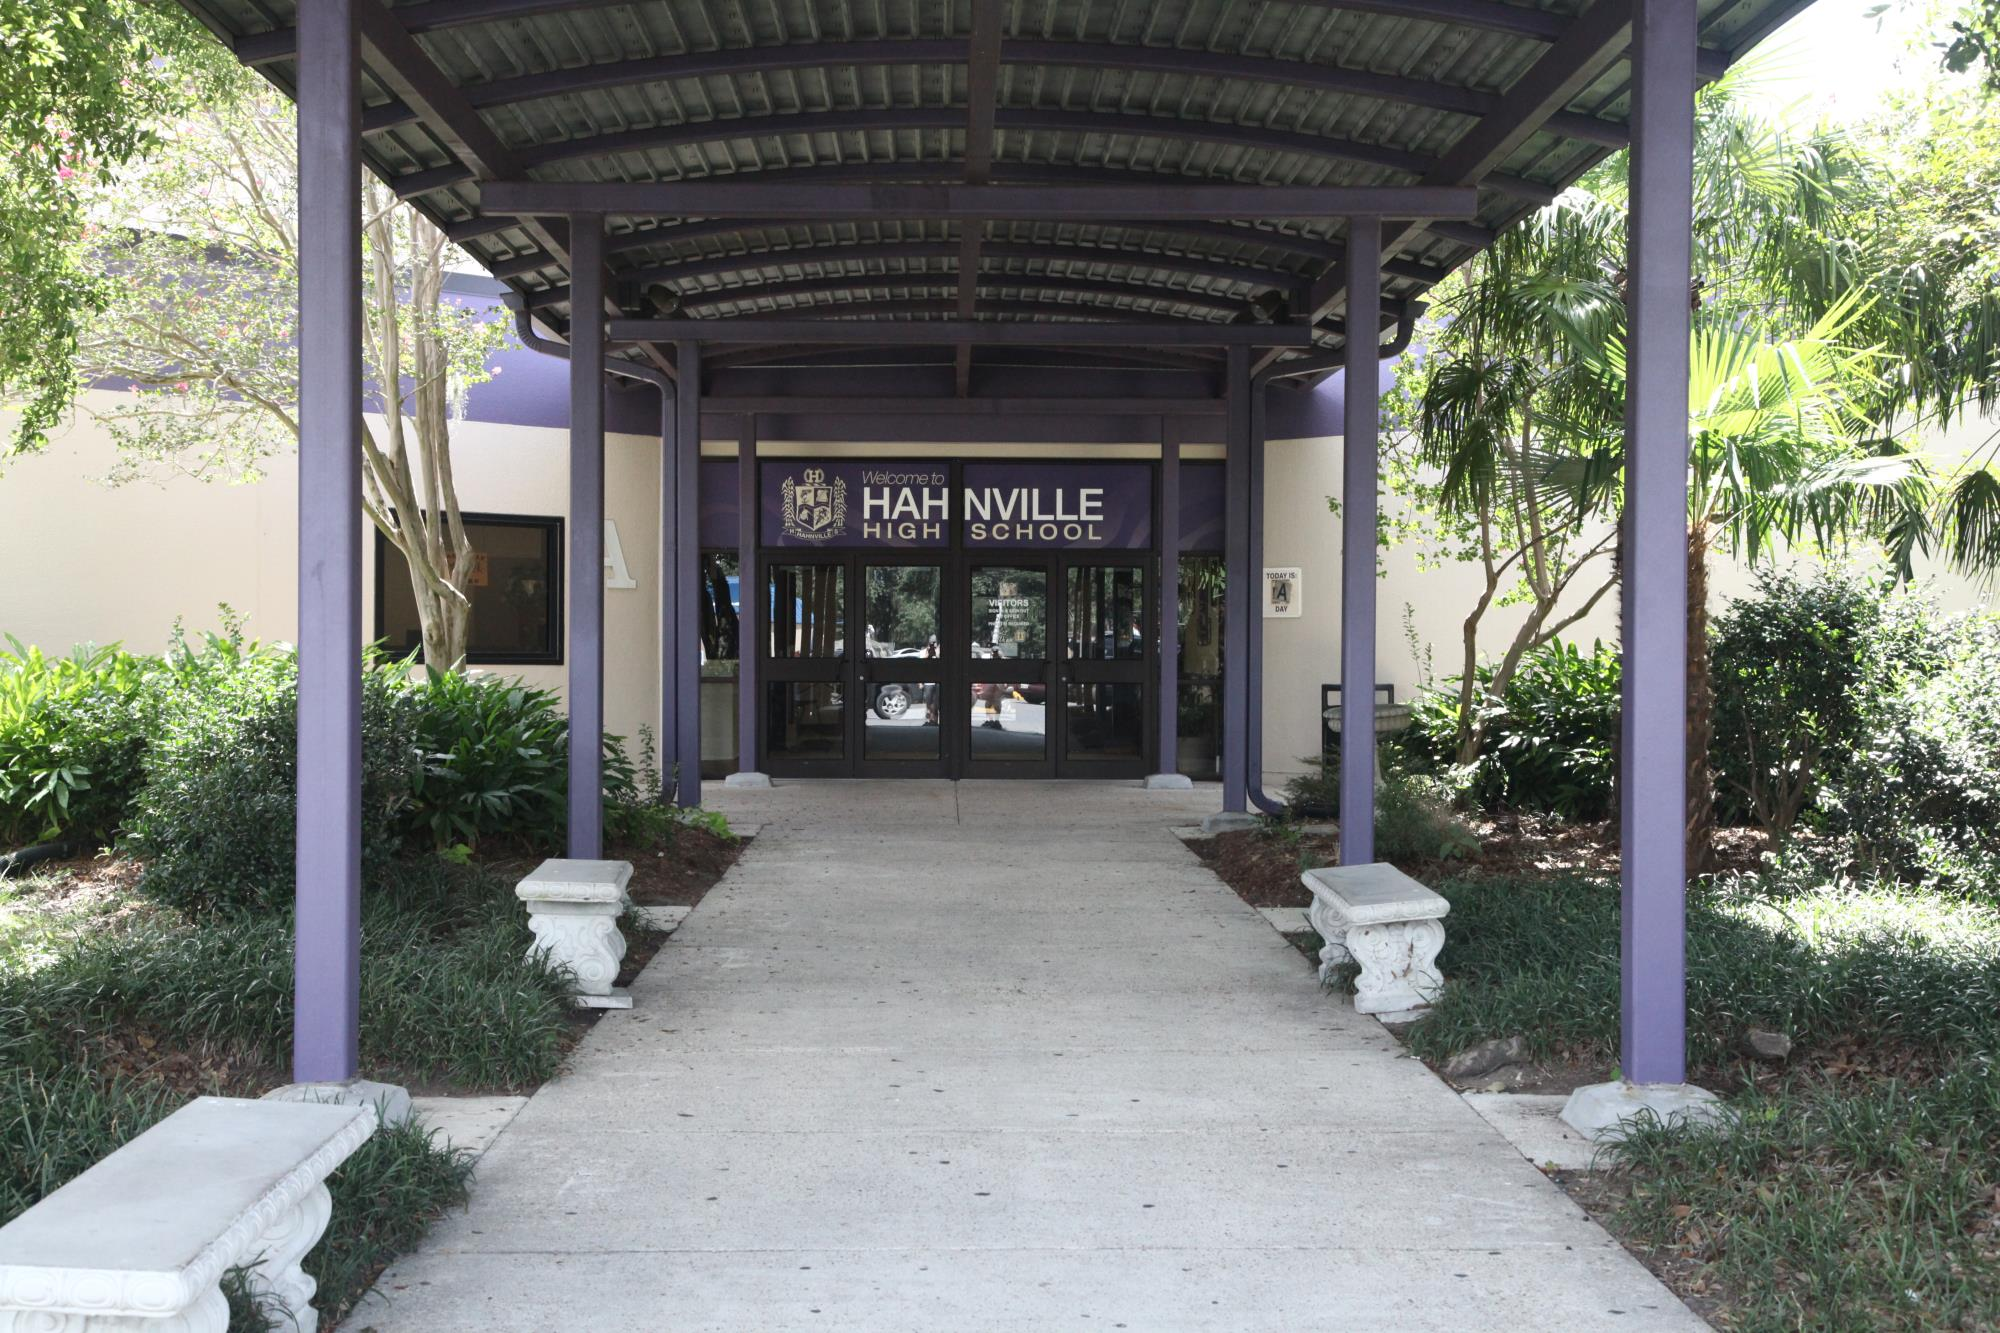 Hahnville High School